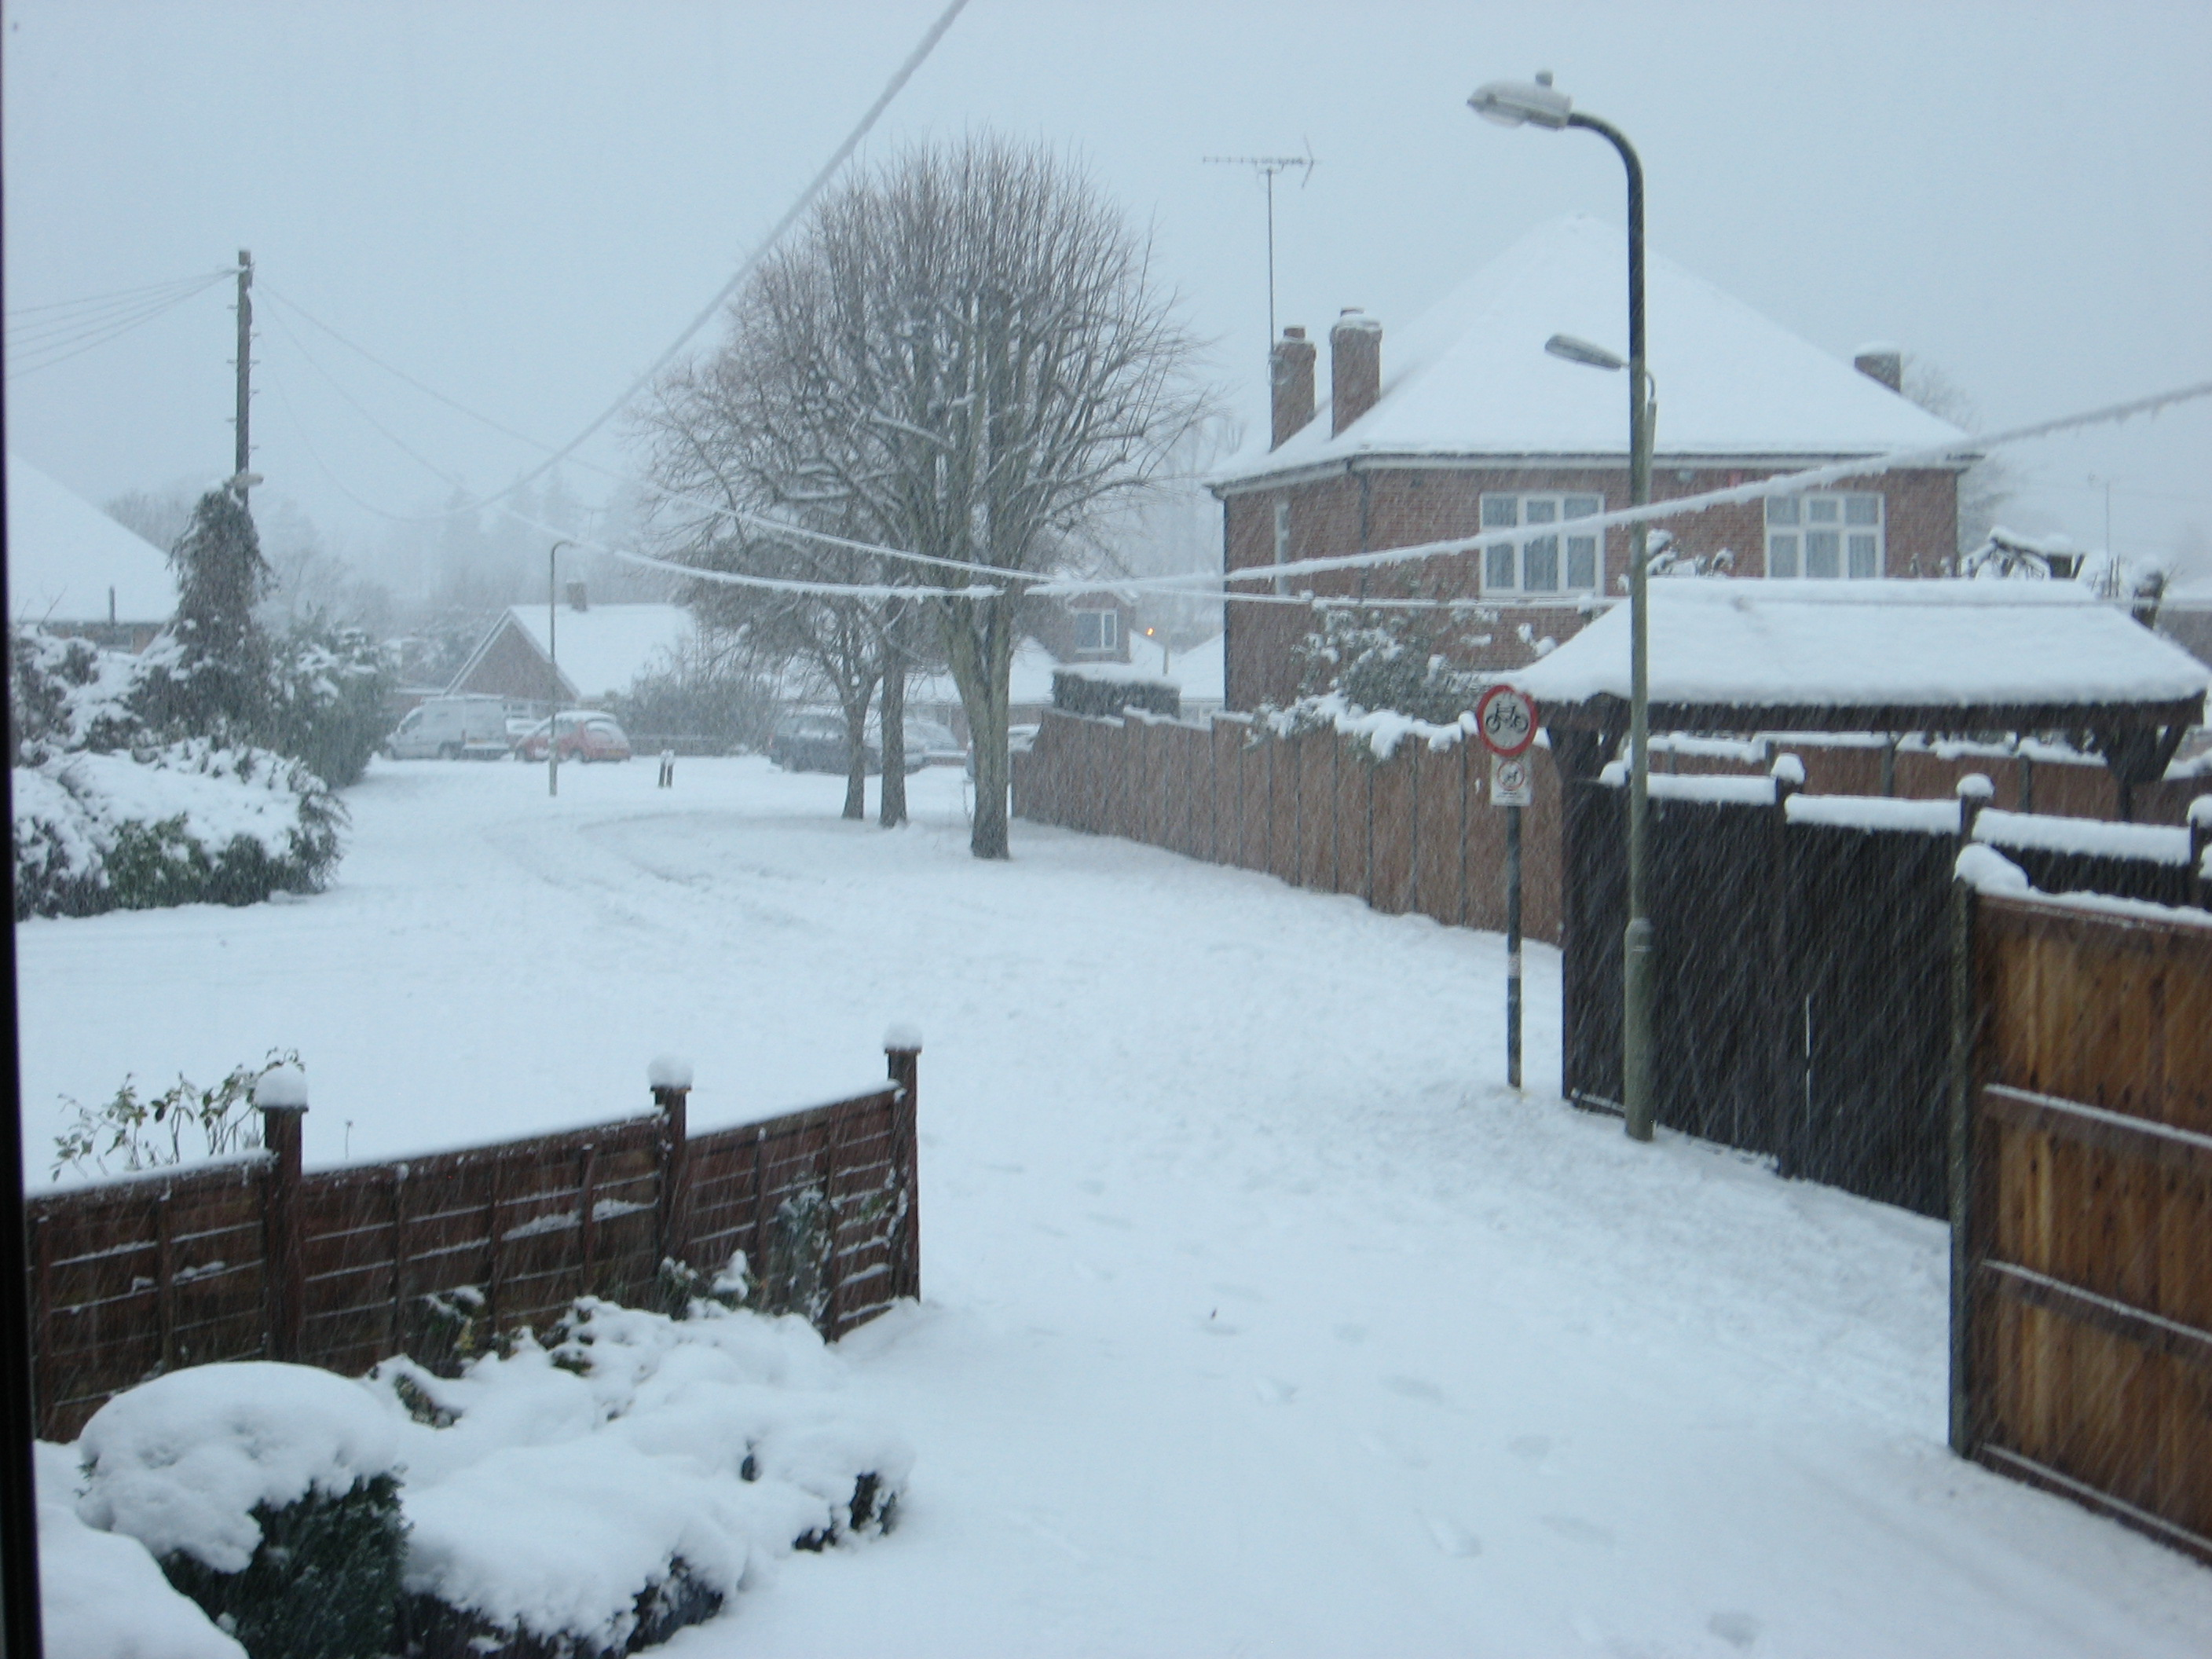 One of the rare occasions when there was notable snow in our road, January 2010.  Well, it seemed vaguely festive!